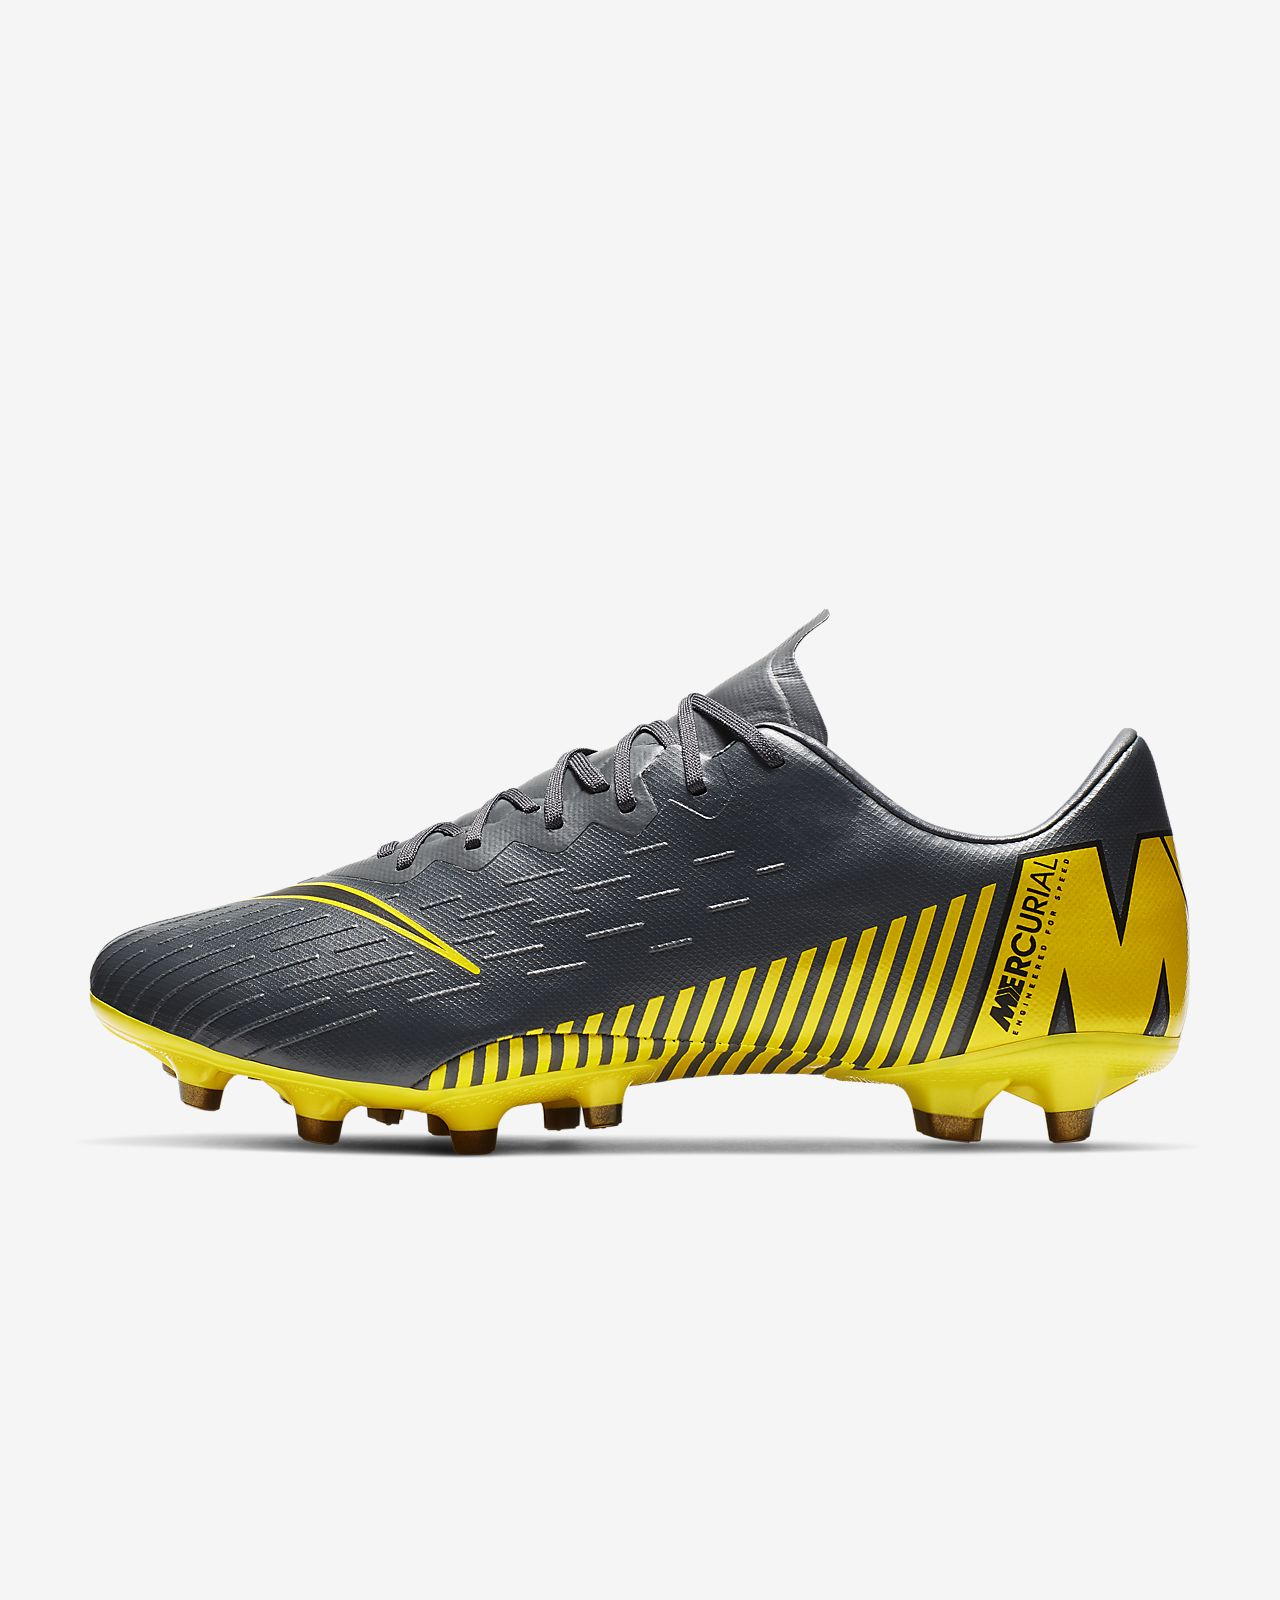 ef703209e Nike Mercurial Vapor XII Pro AG-PRO Artificial-Grass Football Boot ...